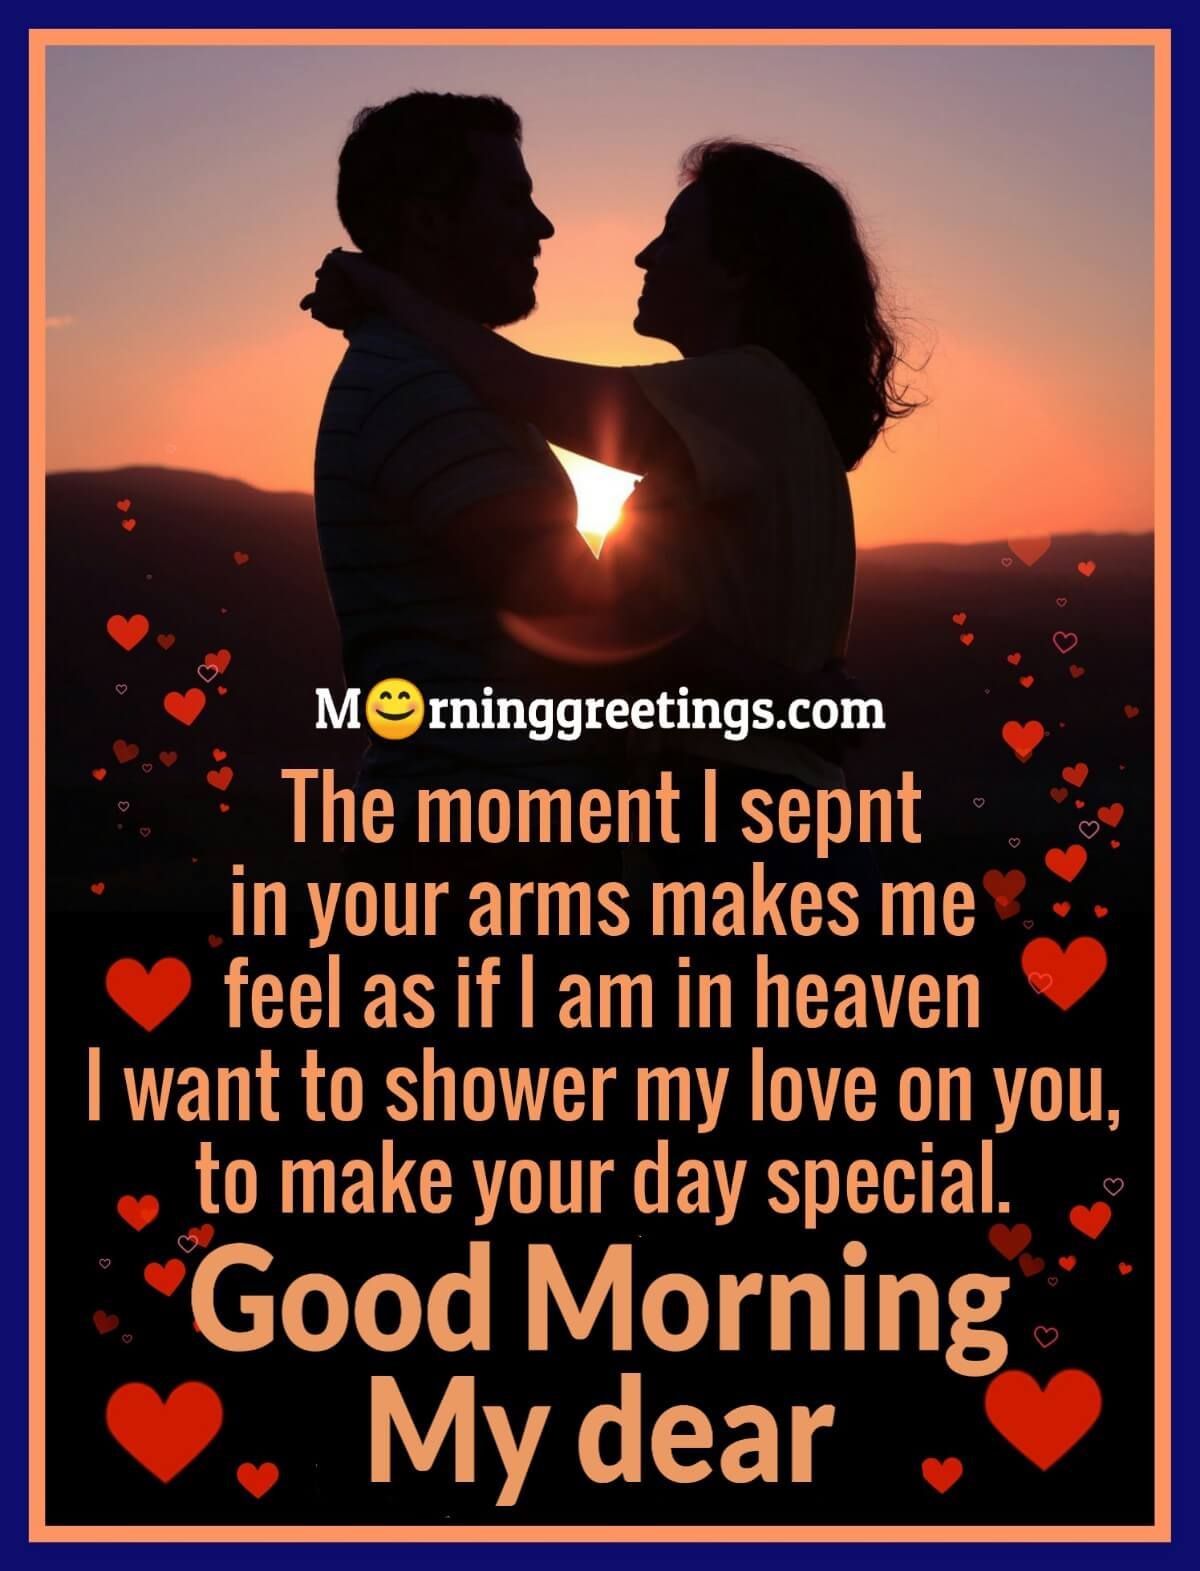 Good Morning Hugs And Kisses : morning, kisses, Morning, Quotes, Messages, Cards, Greetings, Wishes, Images